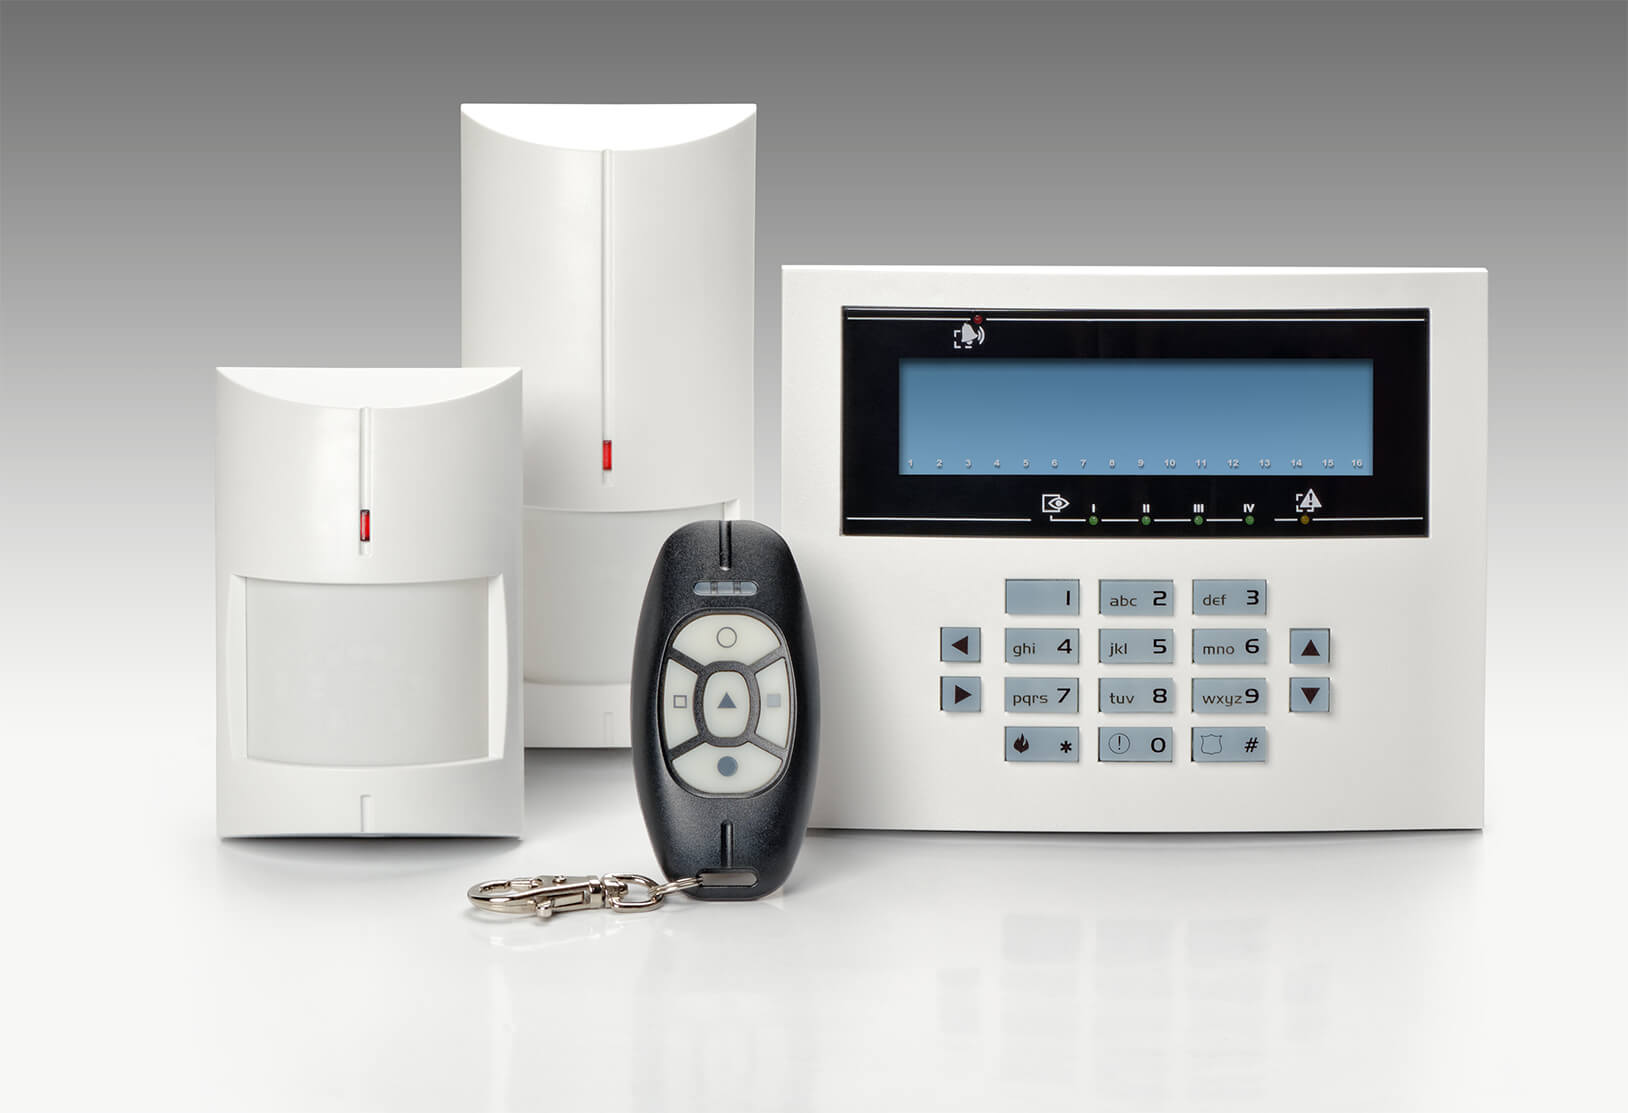 Business & Residential NACOSS Approved Burglar Alarms In Ladbroke Grove W10 - Local Ladbroke Grove W10 security company.Call 02078872244 - Dedicated to Safety & Security. Companies, shops and homes ..